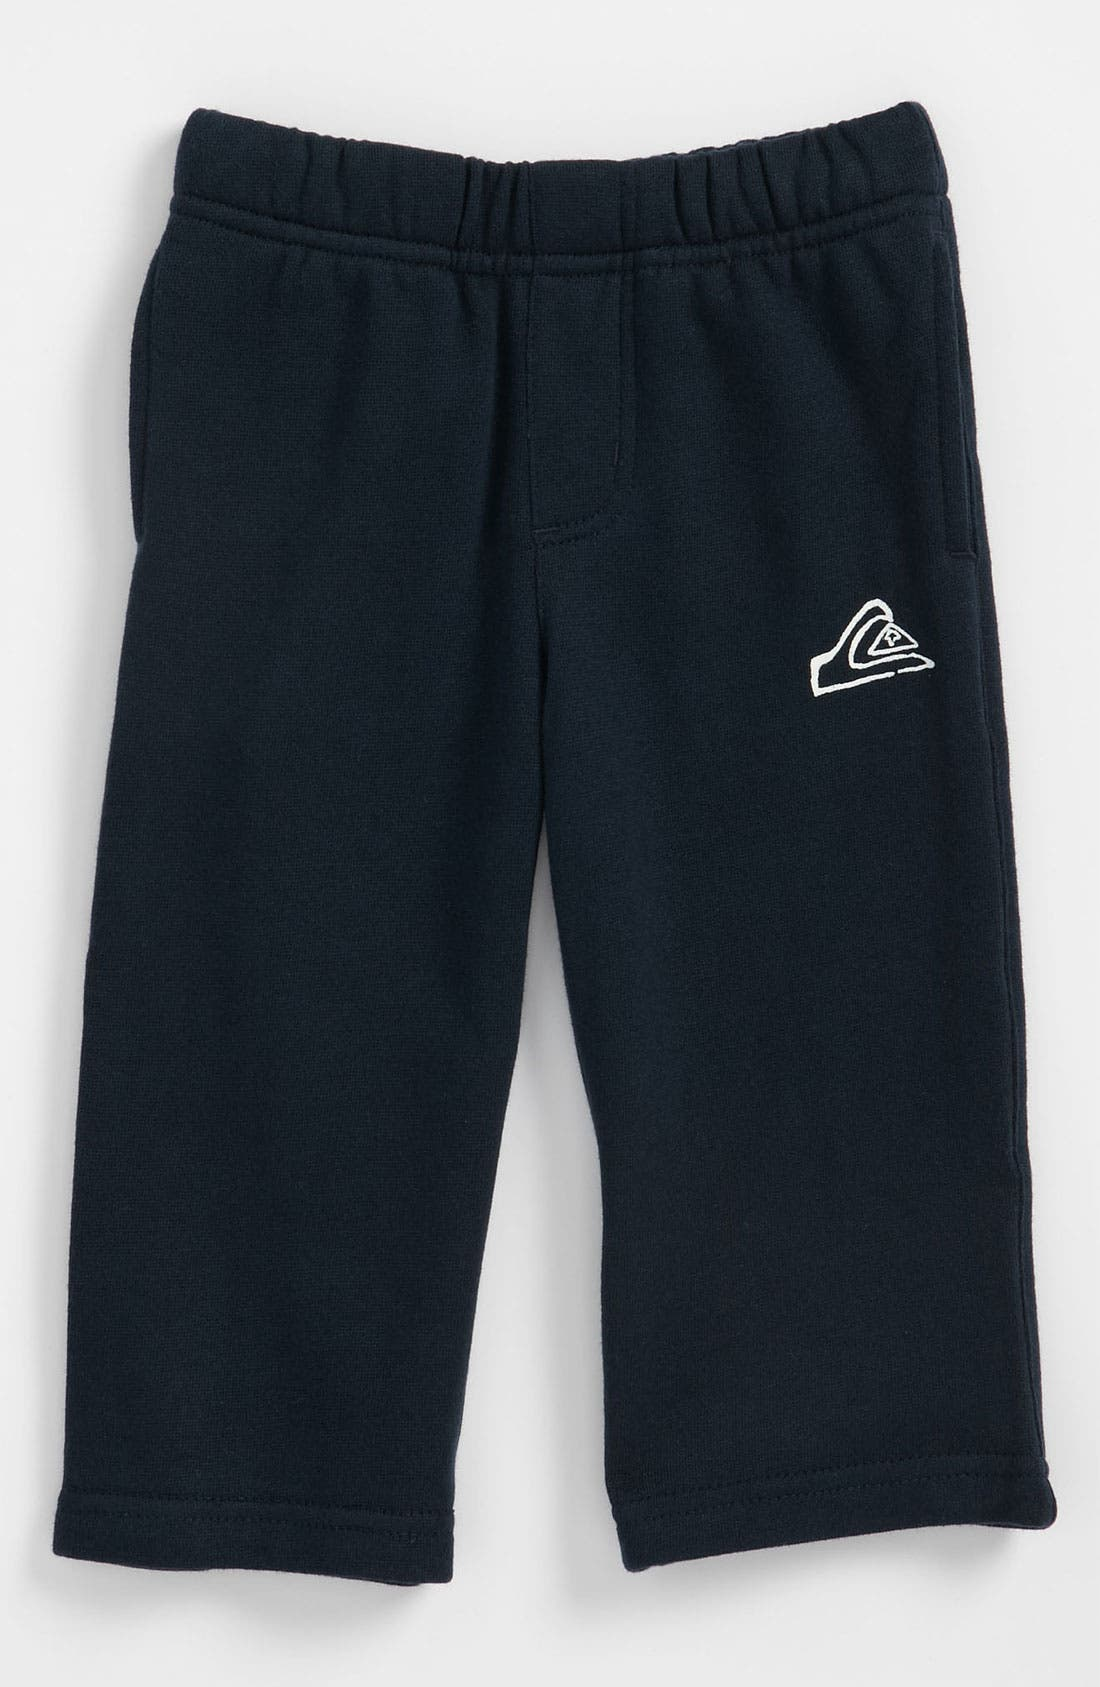 Alternate Image 1 Selected - Quiksilver 'Rest Stop' Fleece Pants (Infant)